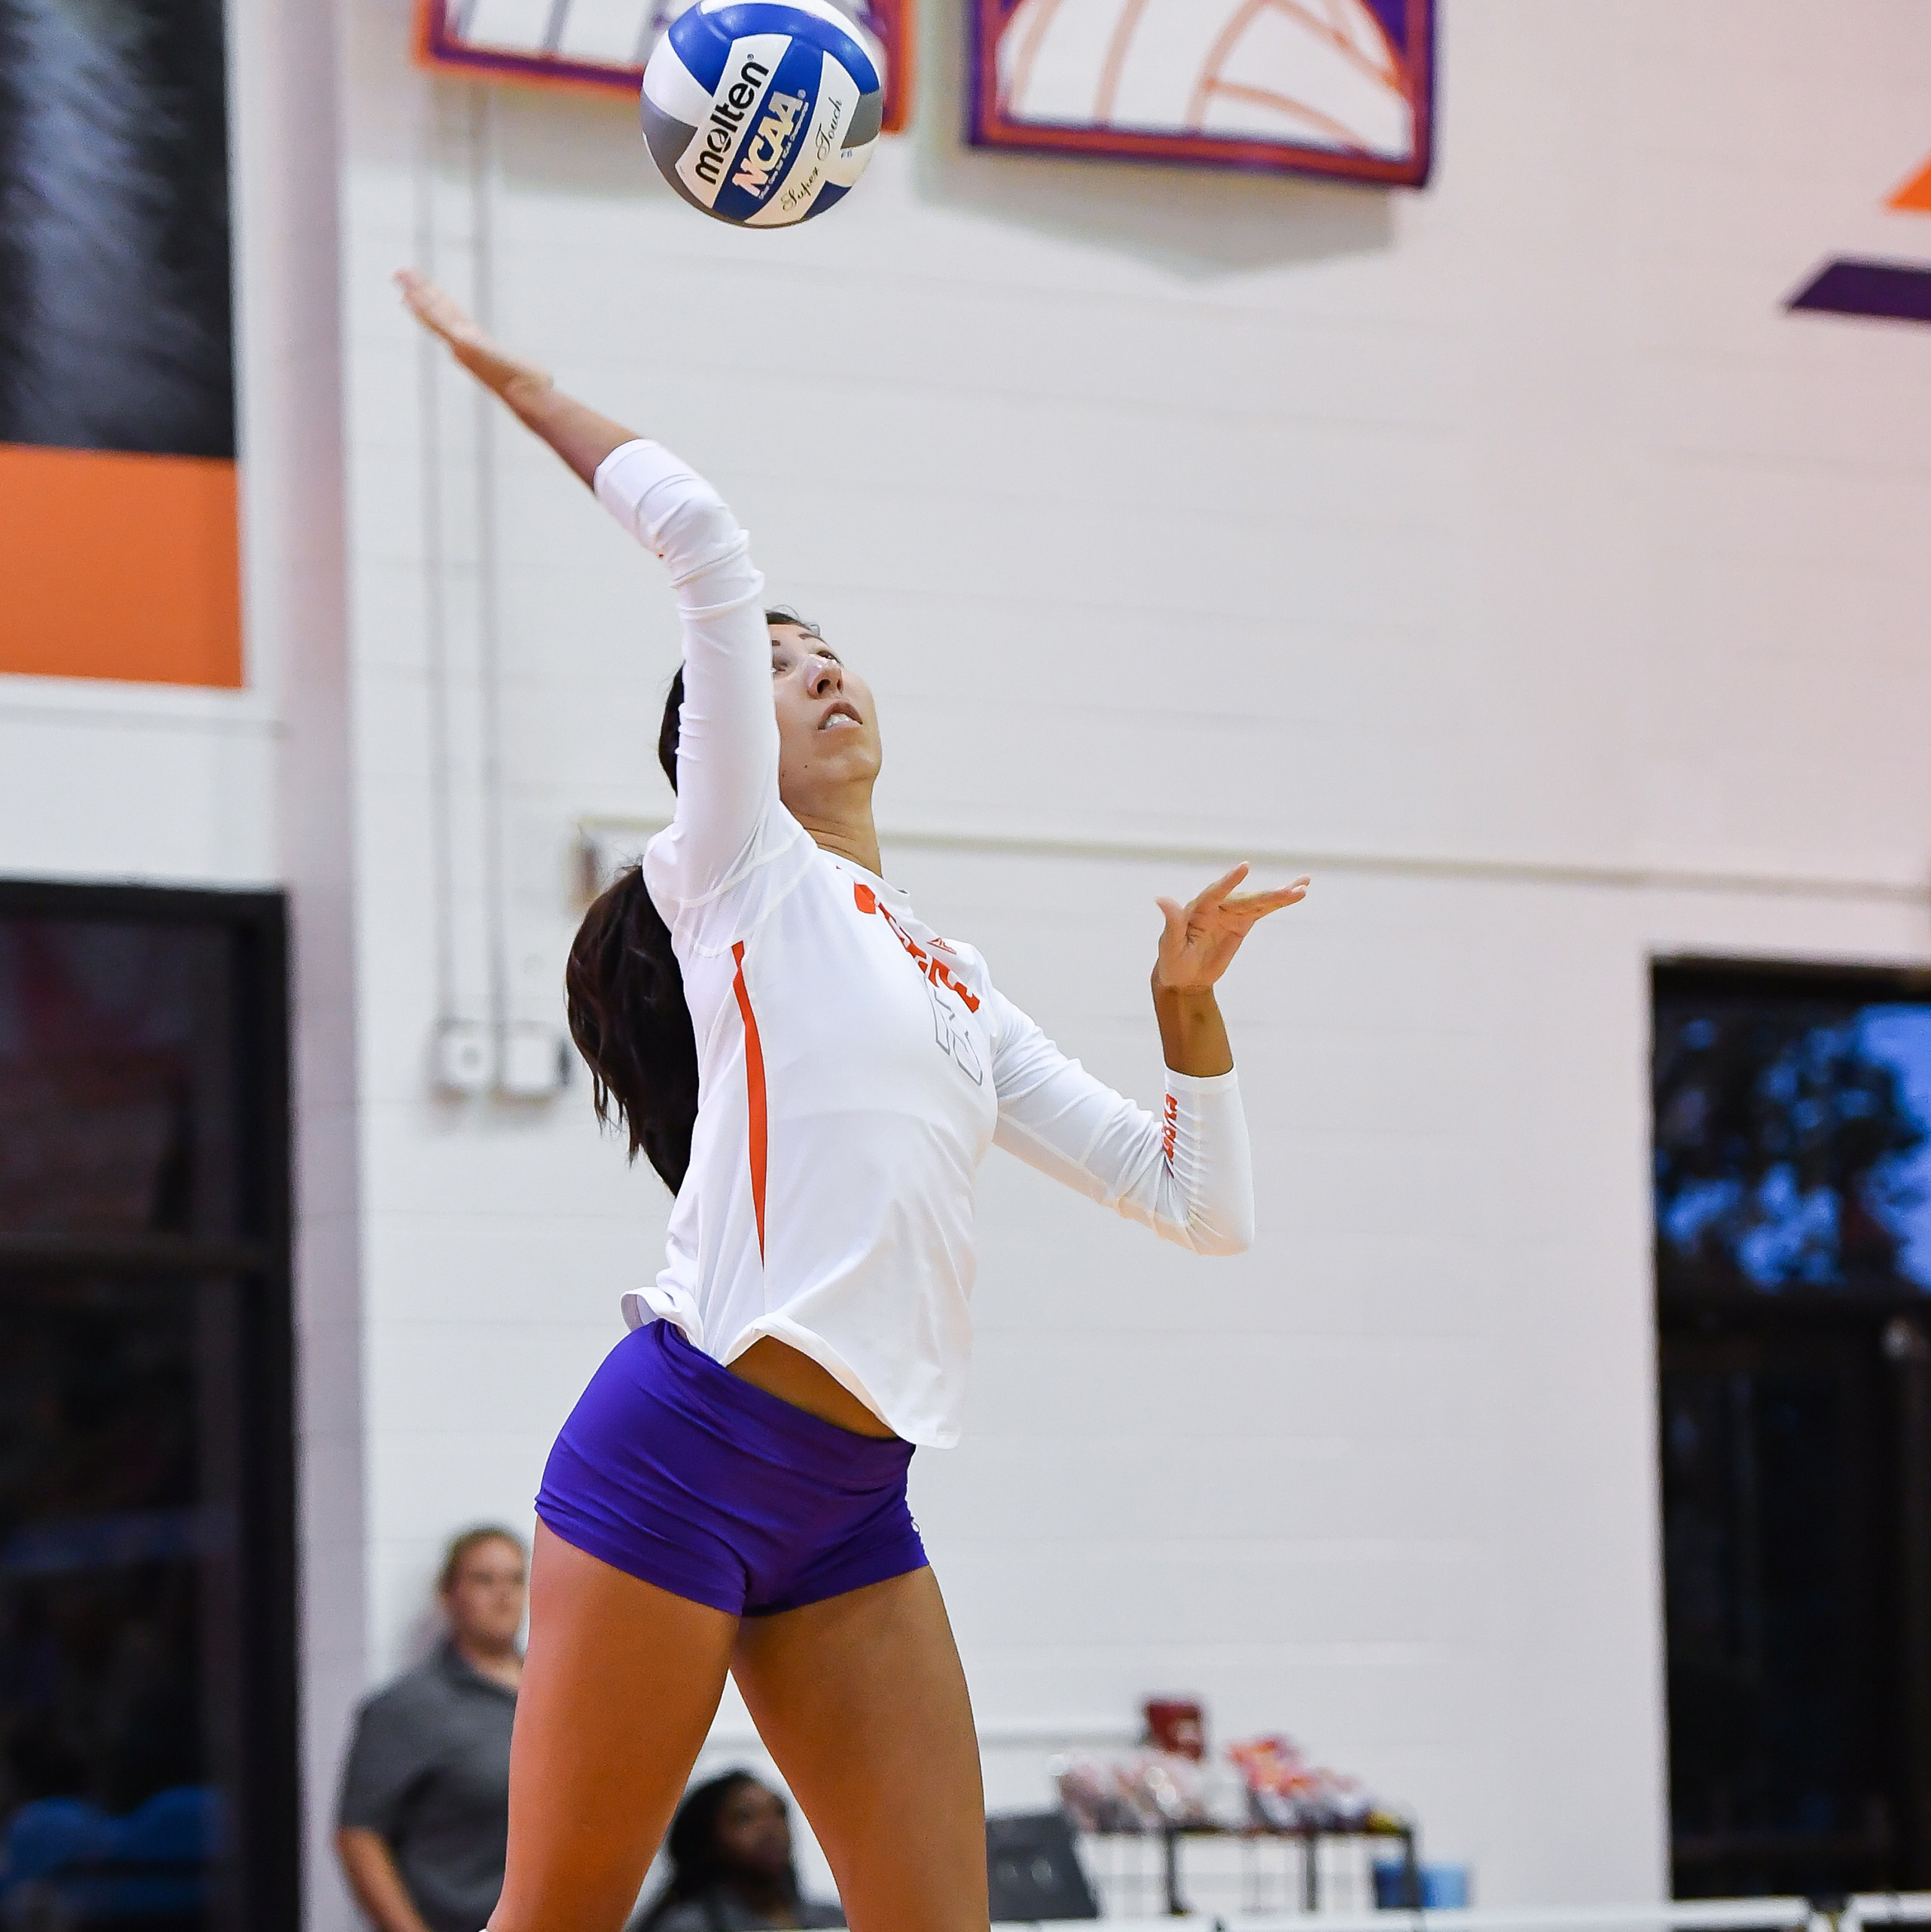 Miami Comes Back To Defeat Clemson In Four